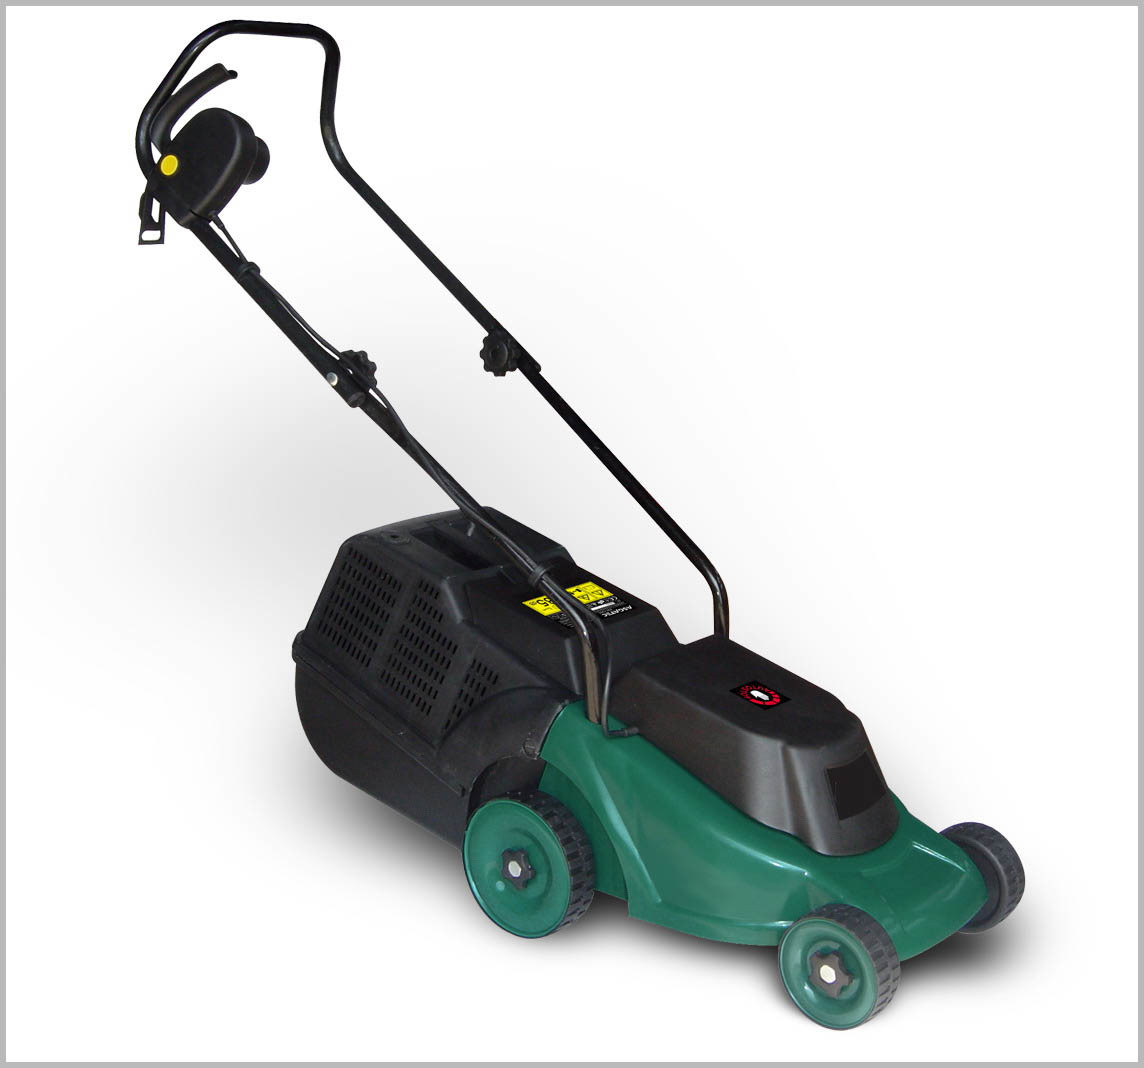 China Electric Lawn Mower Elm 900 China Lawn Mower Gasoline Lawn Mower